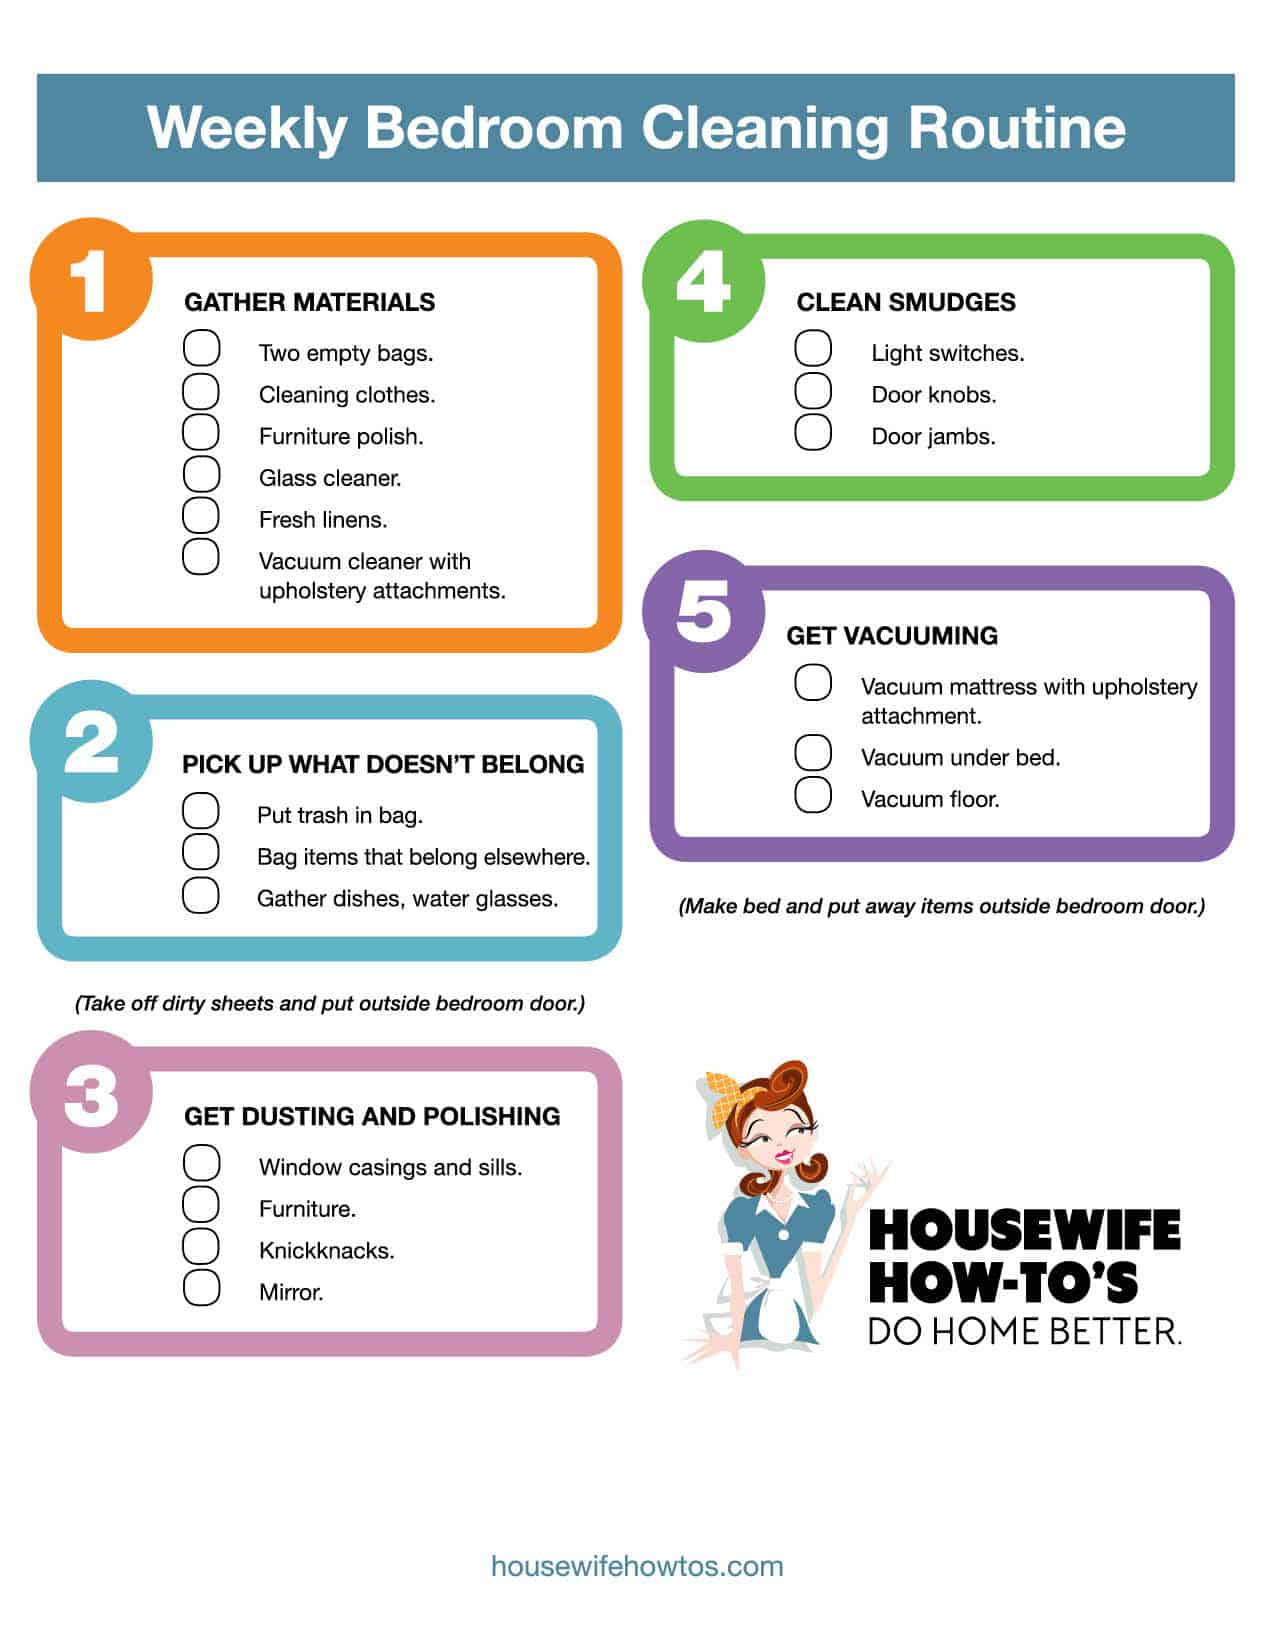 Printable bedroom cleaning checklist to use weekly for a clean room